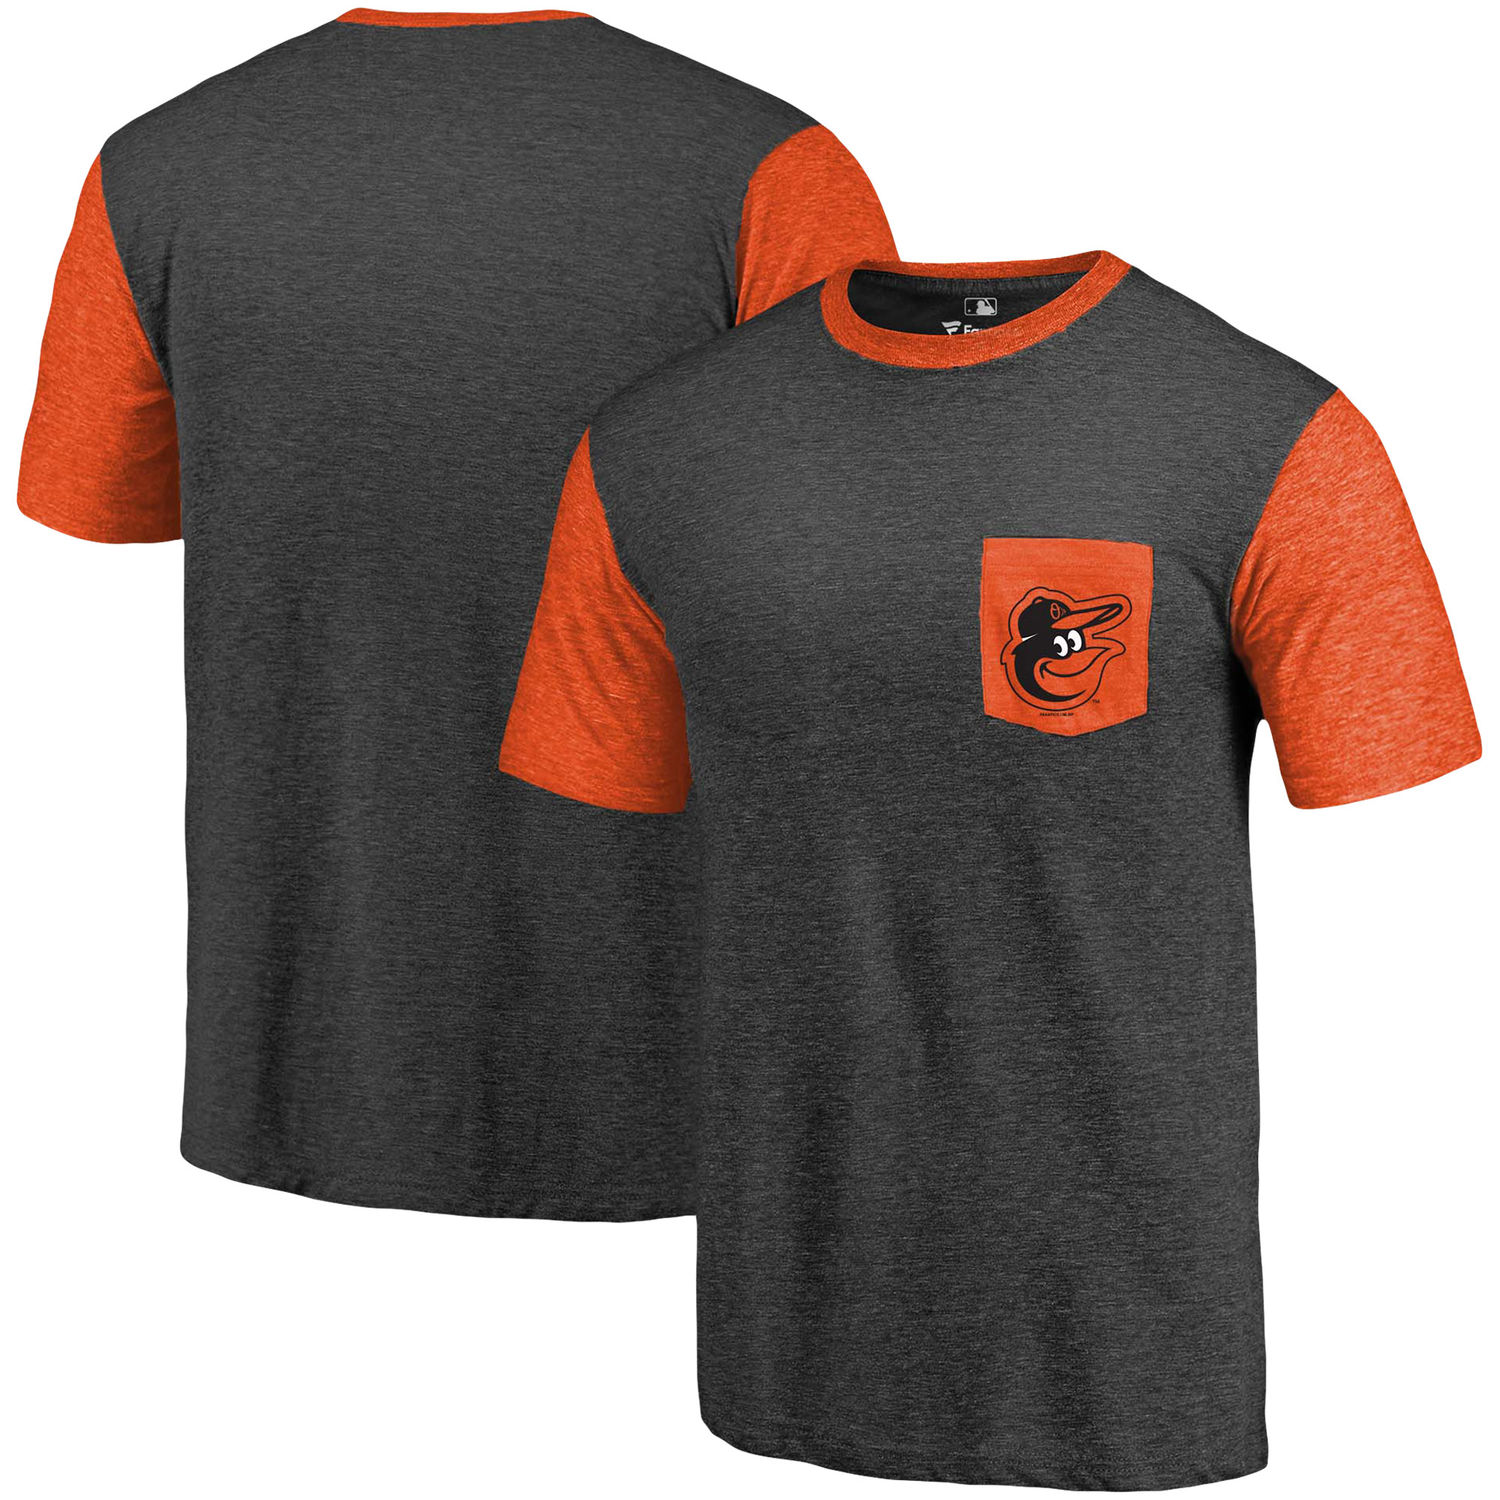 Men's Baltimore Orioles Fanatics Branded Black-Orange Refresh Pocket T-Shirt